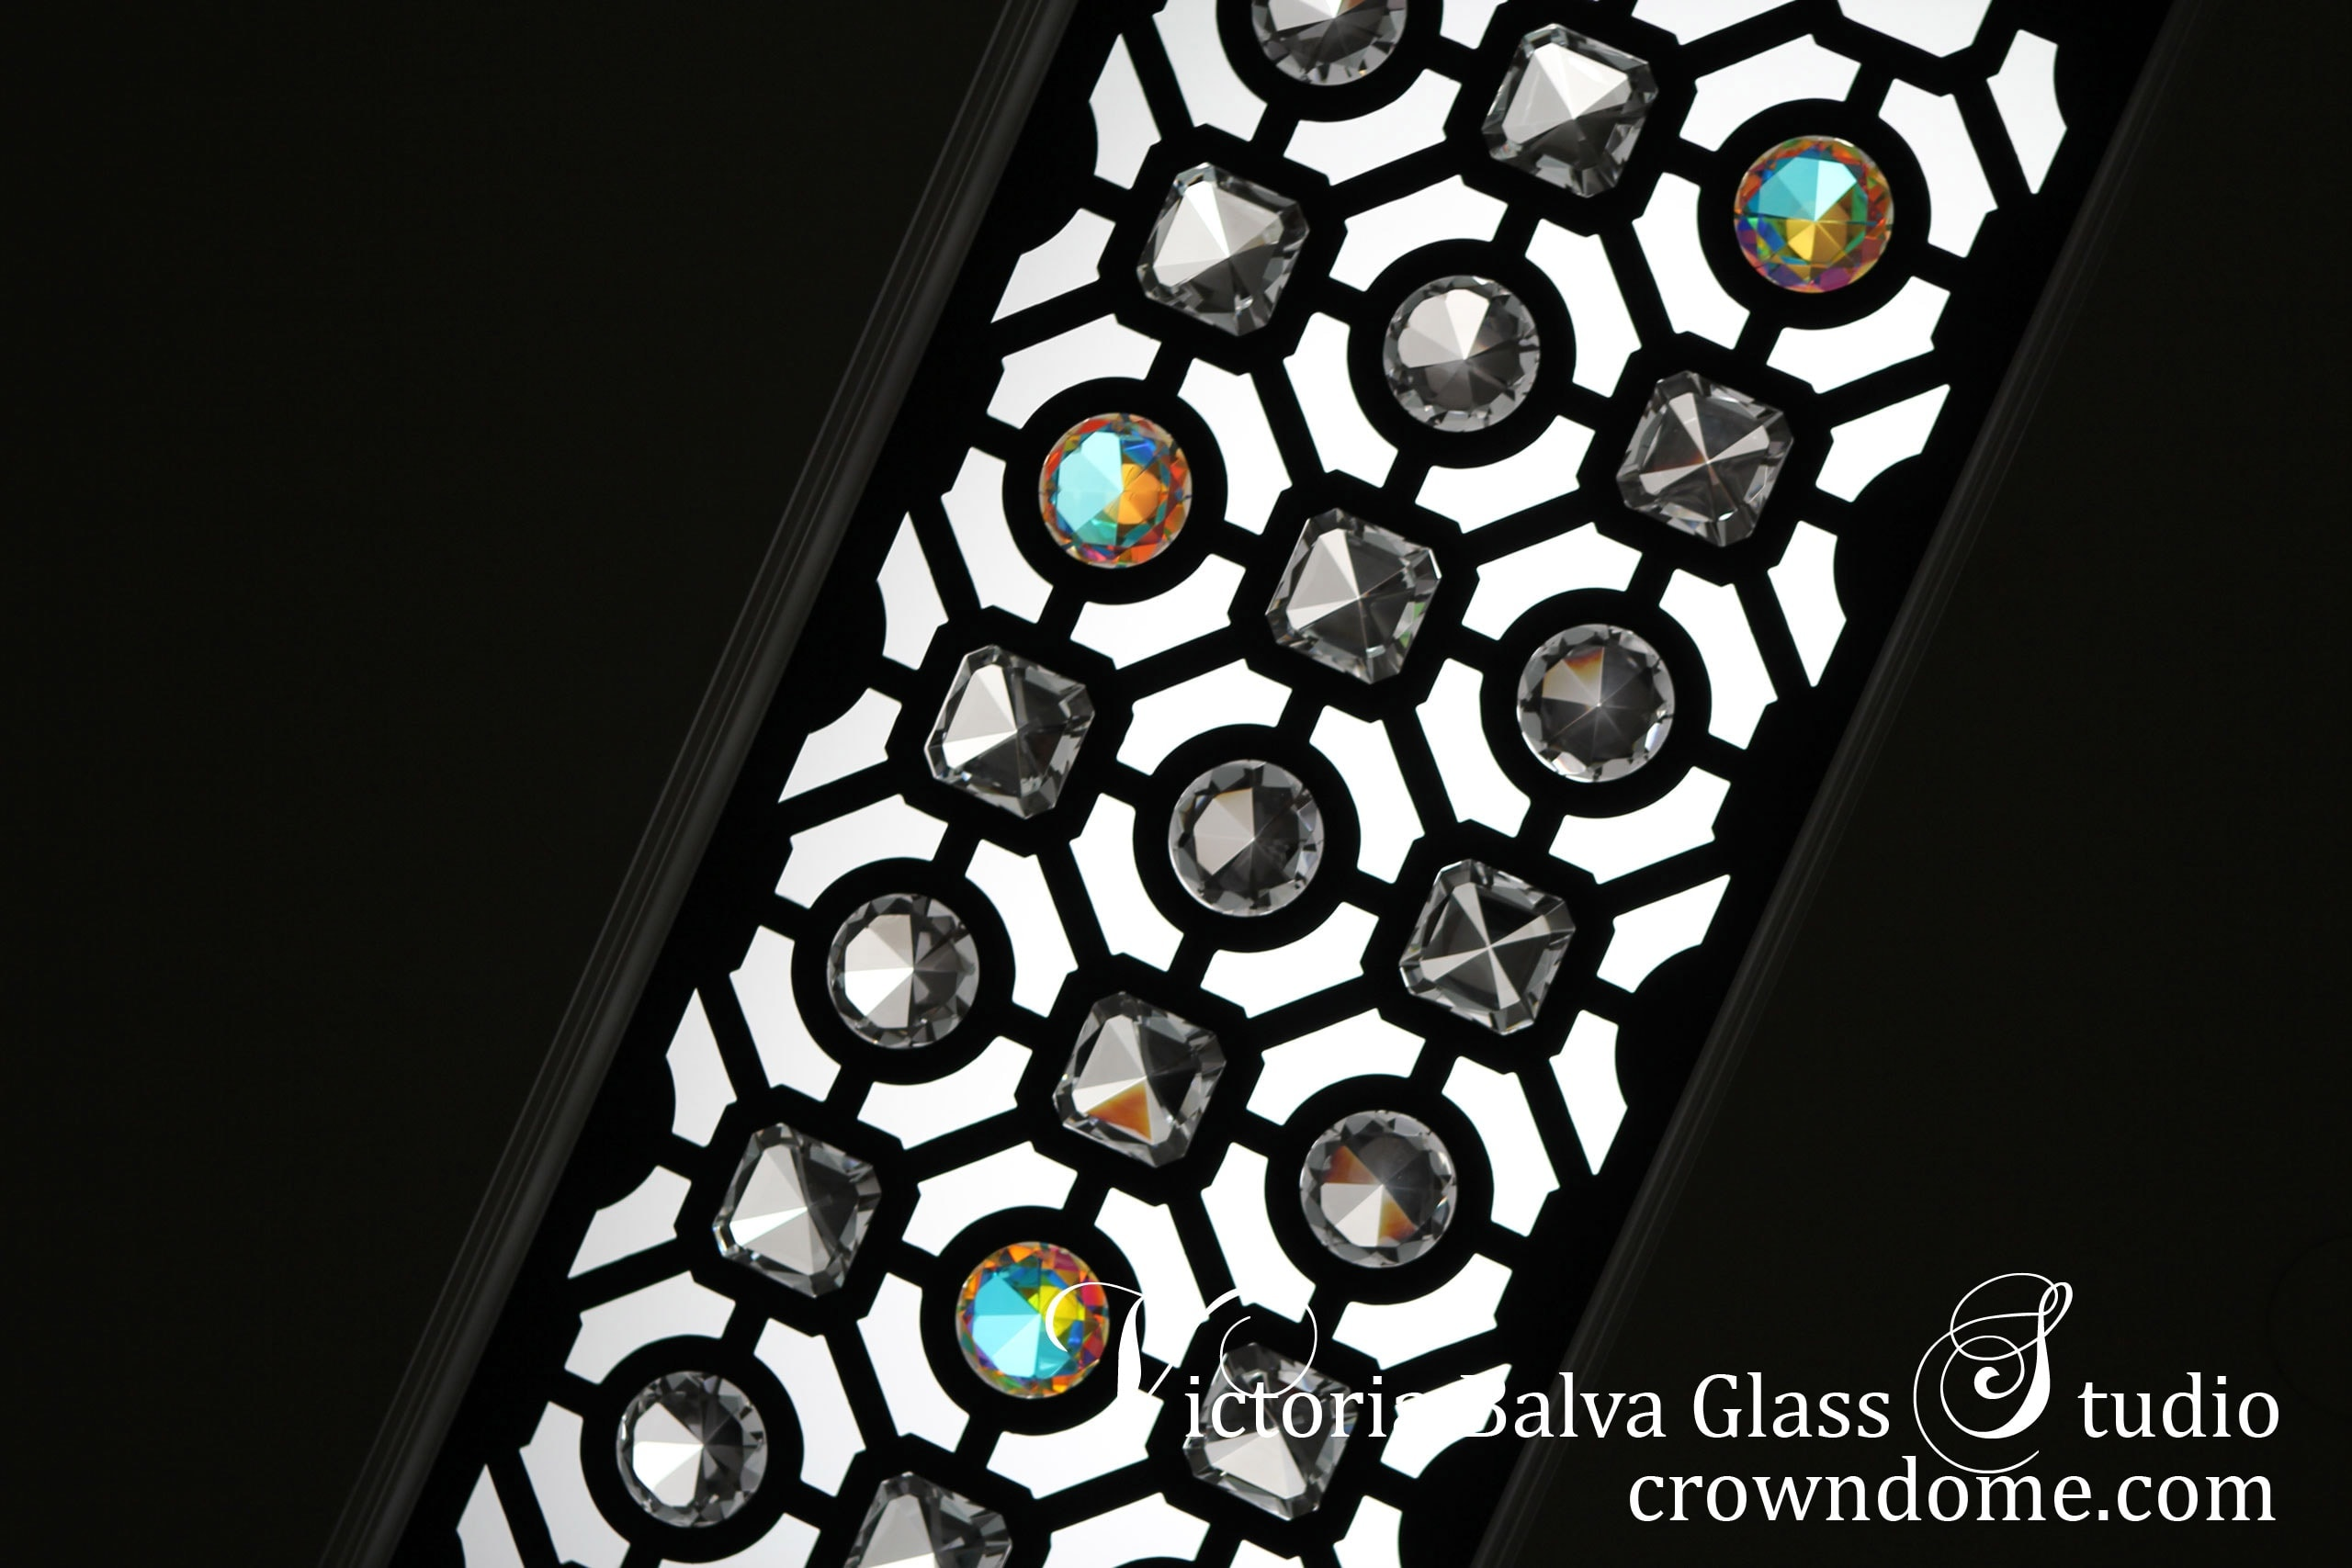 Classically inspired contemporary ornamental leaded glass ceiling lay light water jet cut with large crystal jewels for a bathroom of a luxury custom built residence